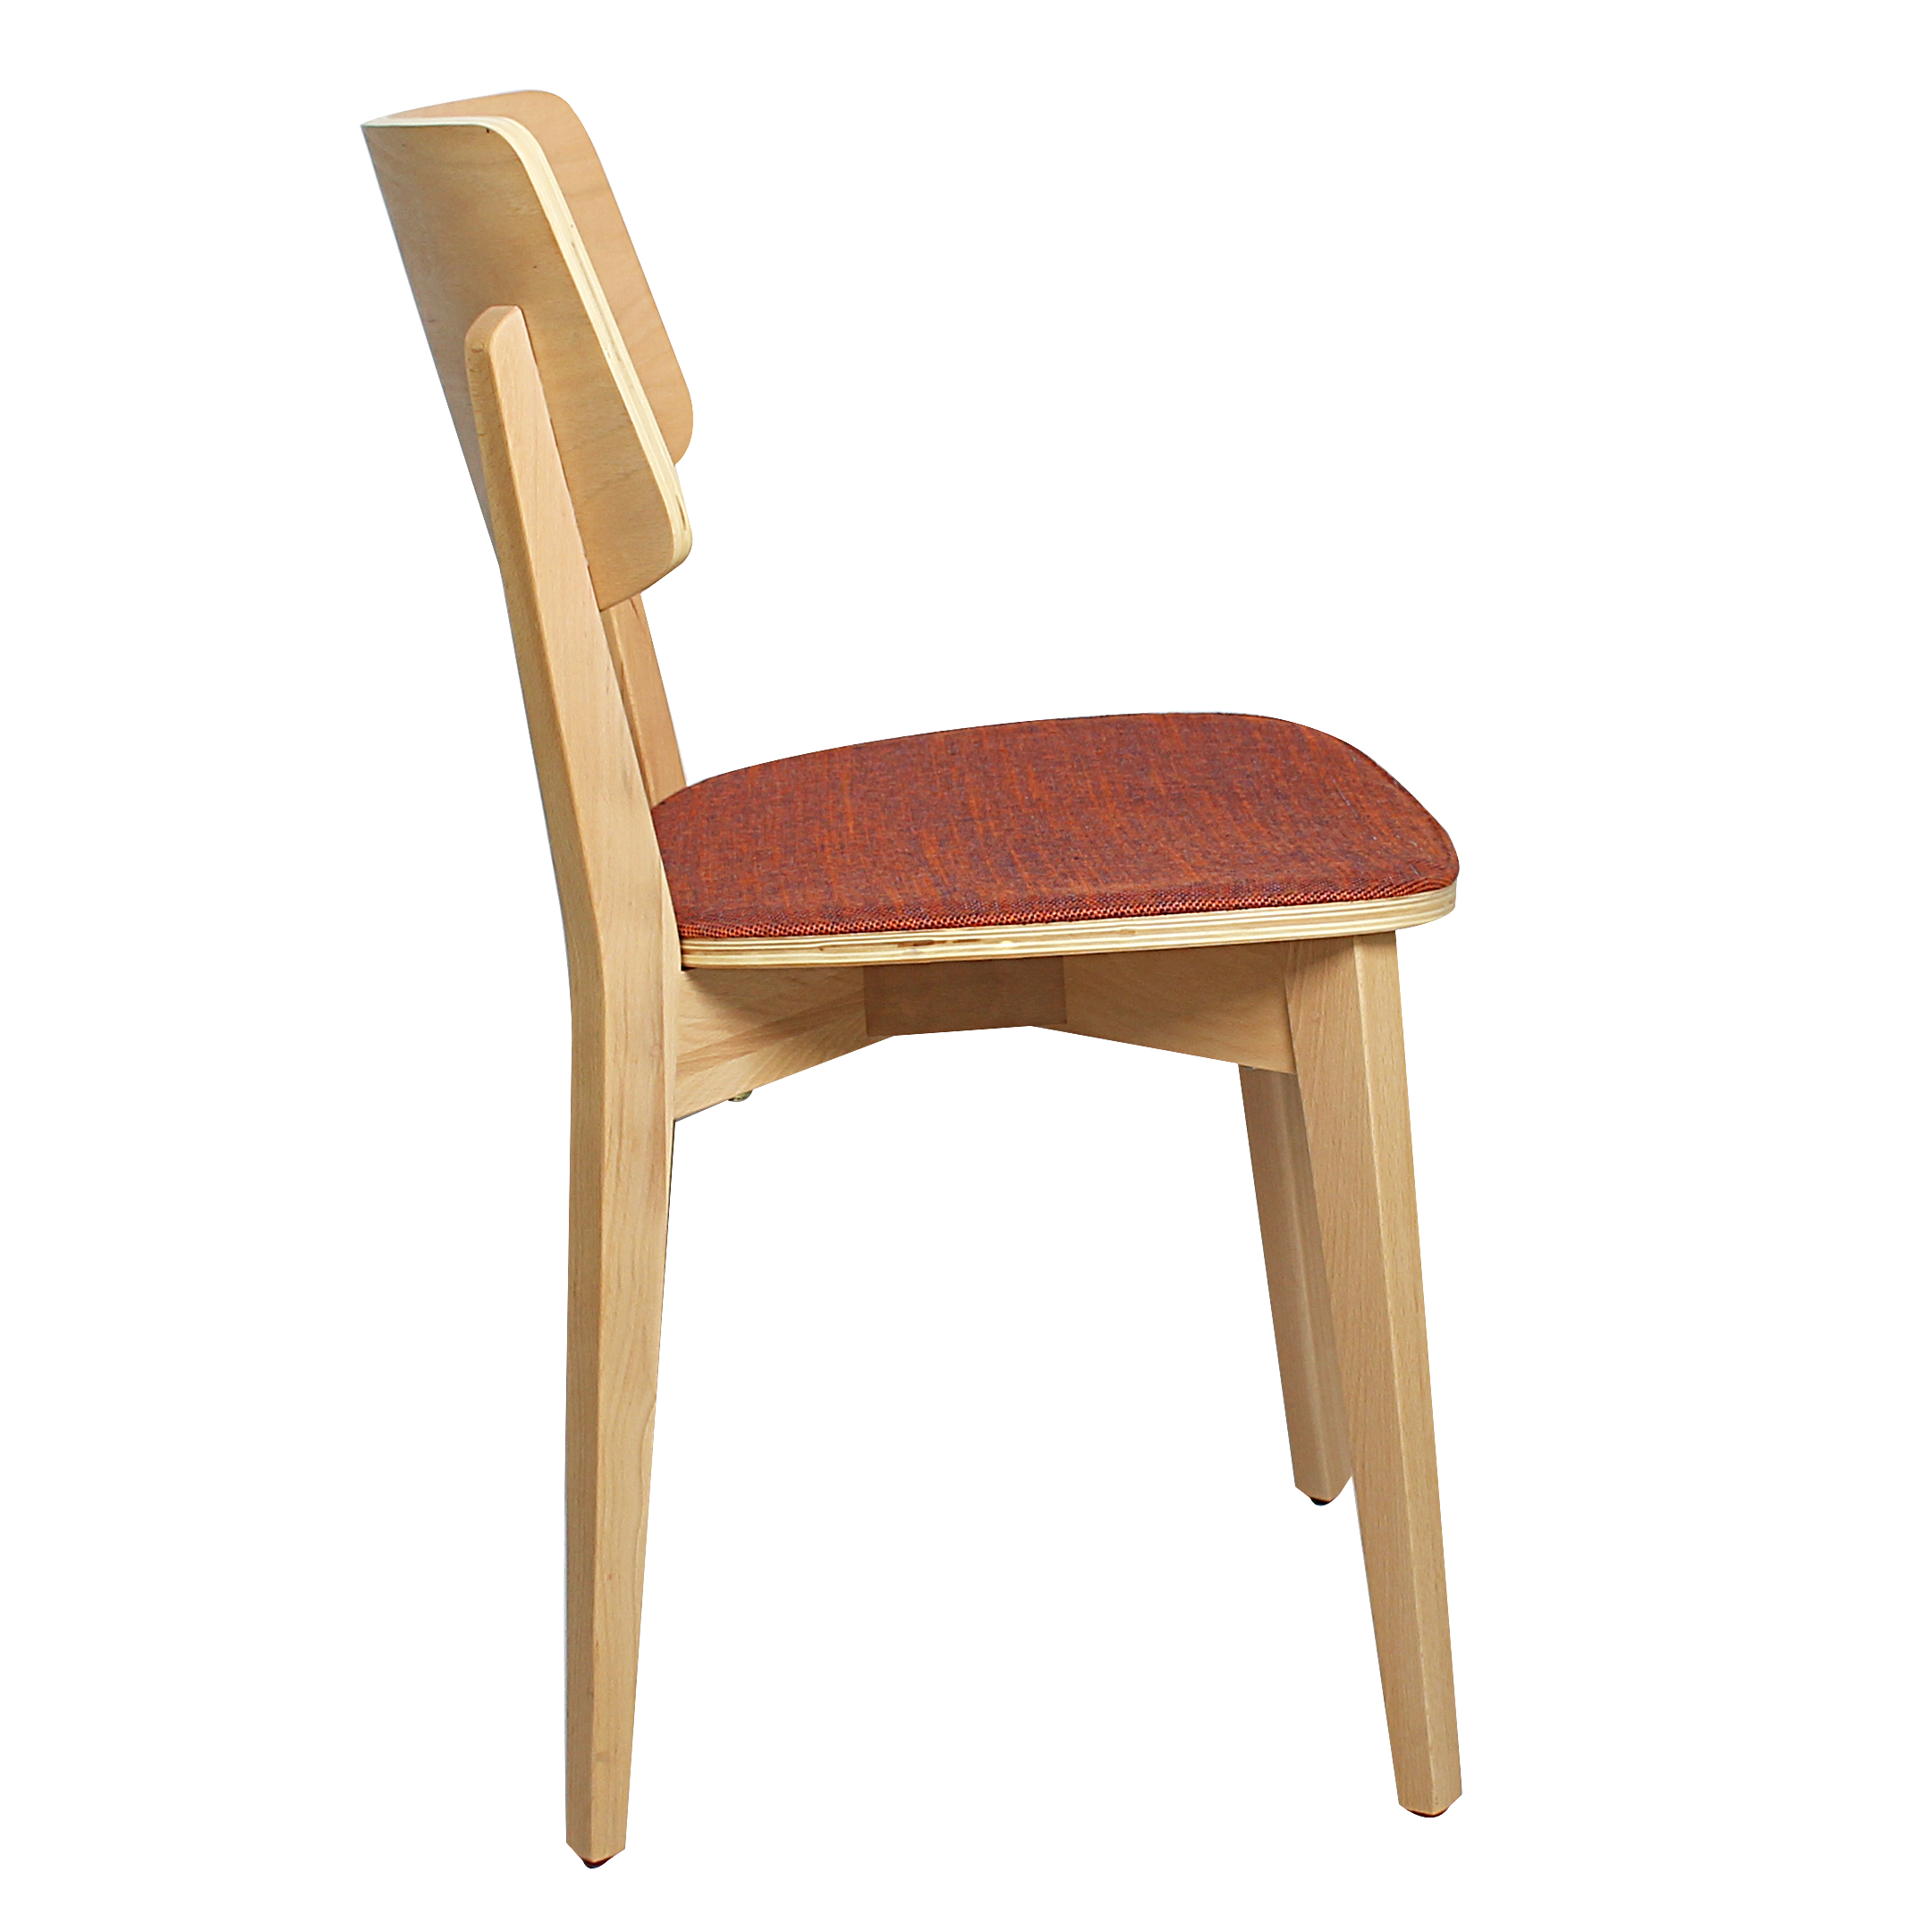 Otto Chair (Upholstered Seat Pad)